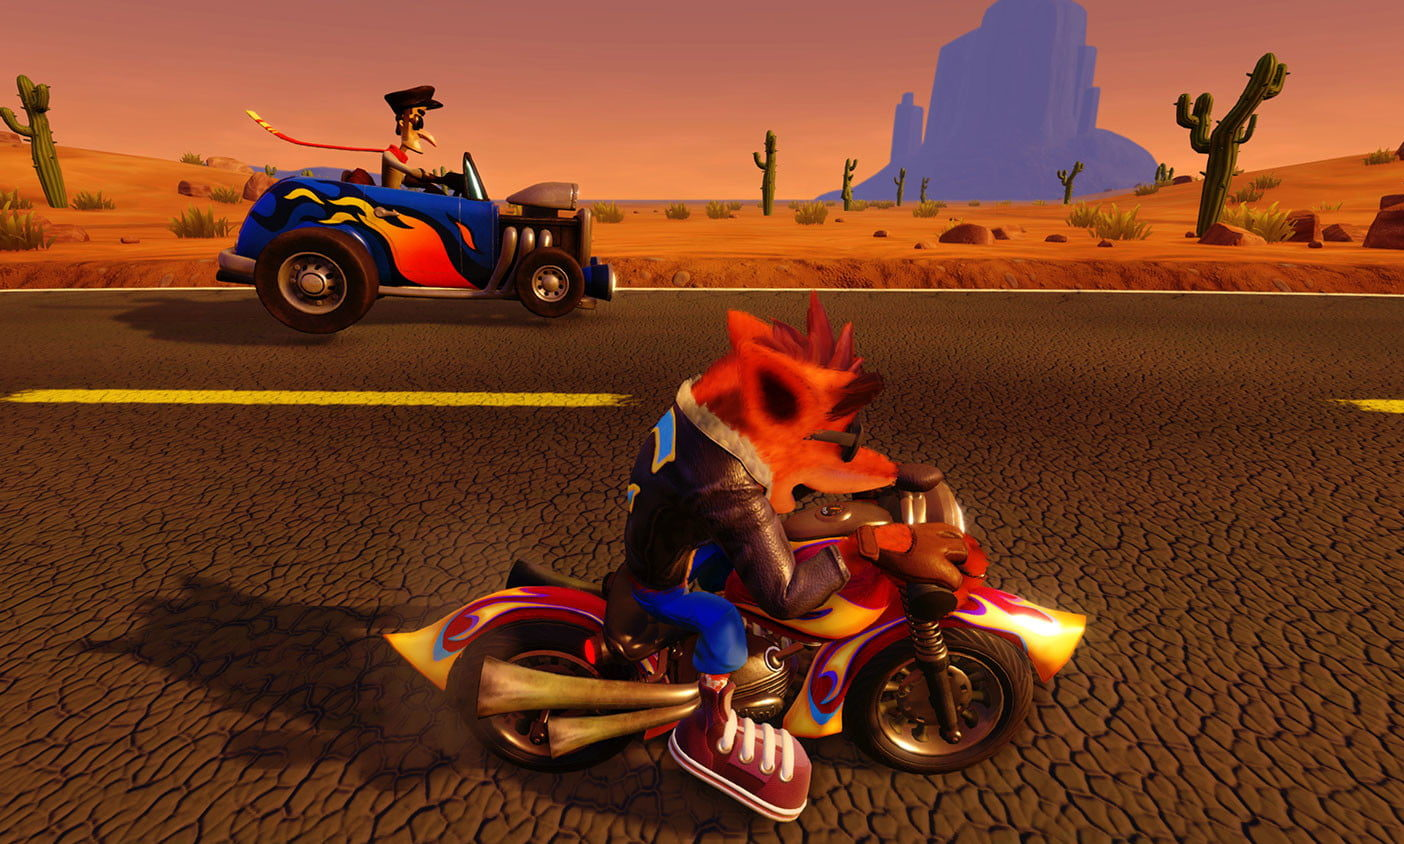 22 Years Later And Crash Bandicoot Is Still As Incredible As Ever crash bandicoot n sane trilogy 3 1500x844 1404x844